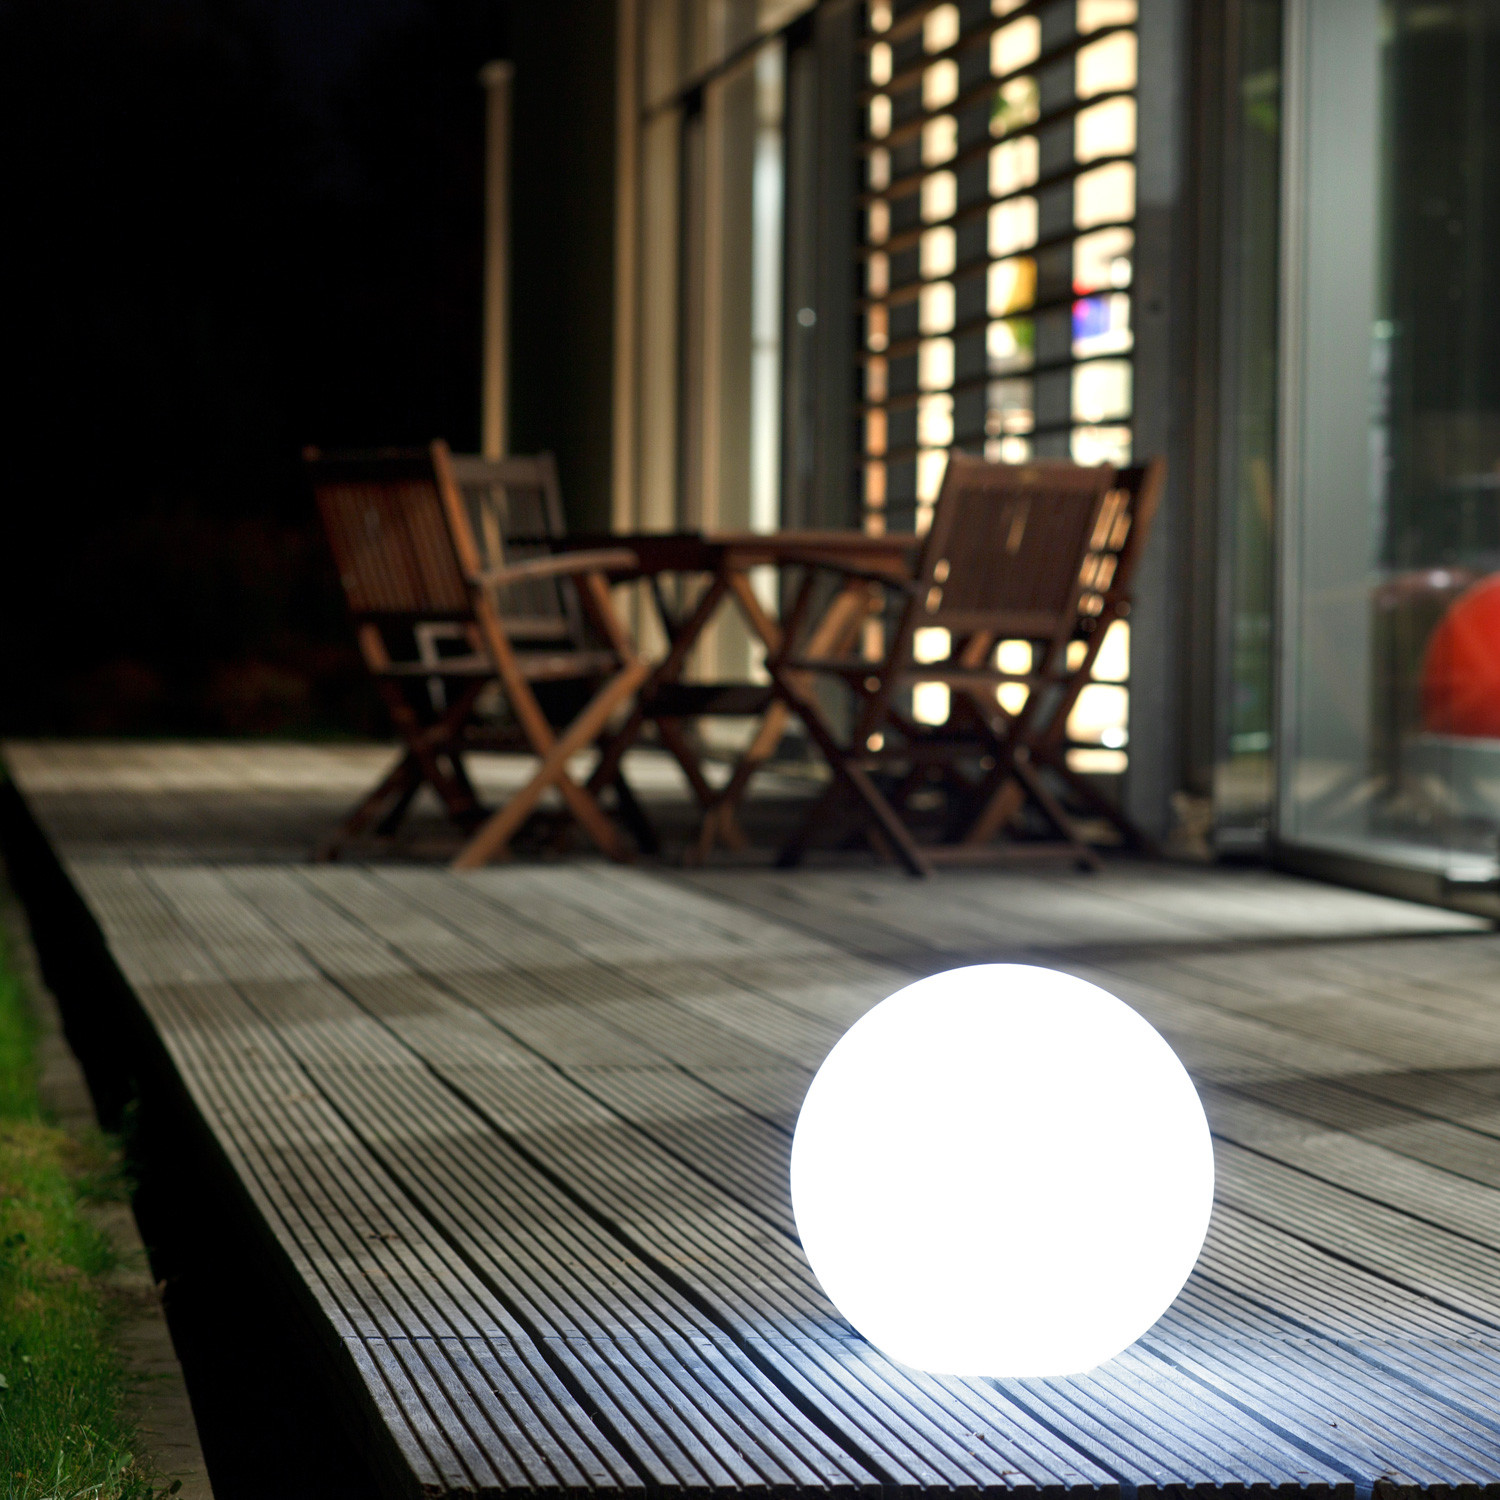 Ball Light by Sophie Ruhland